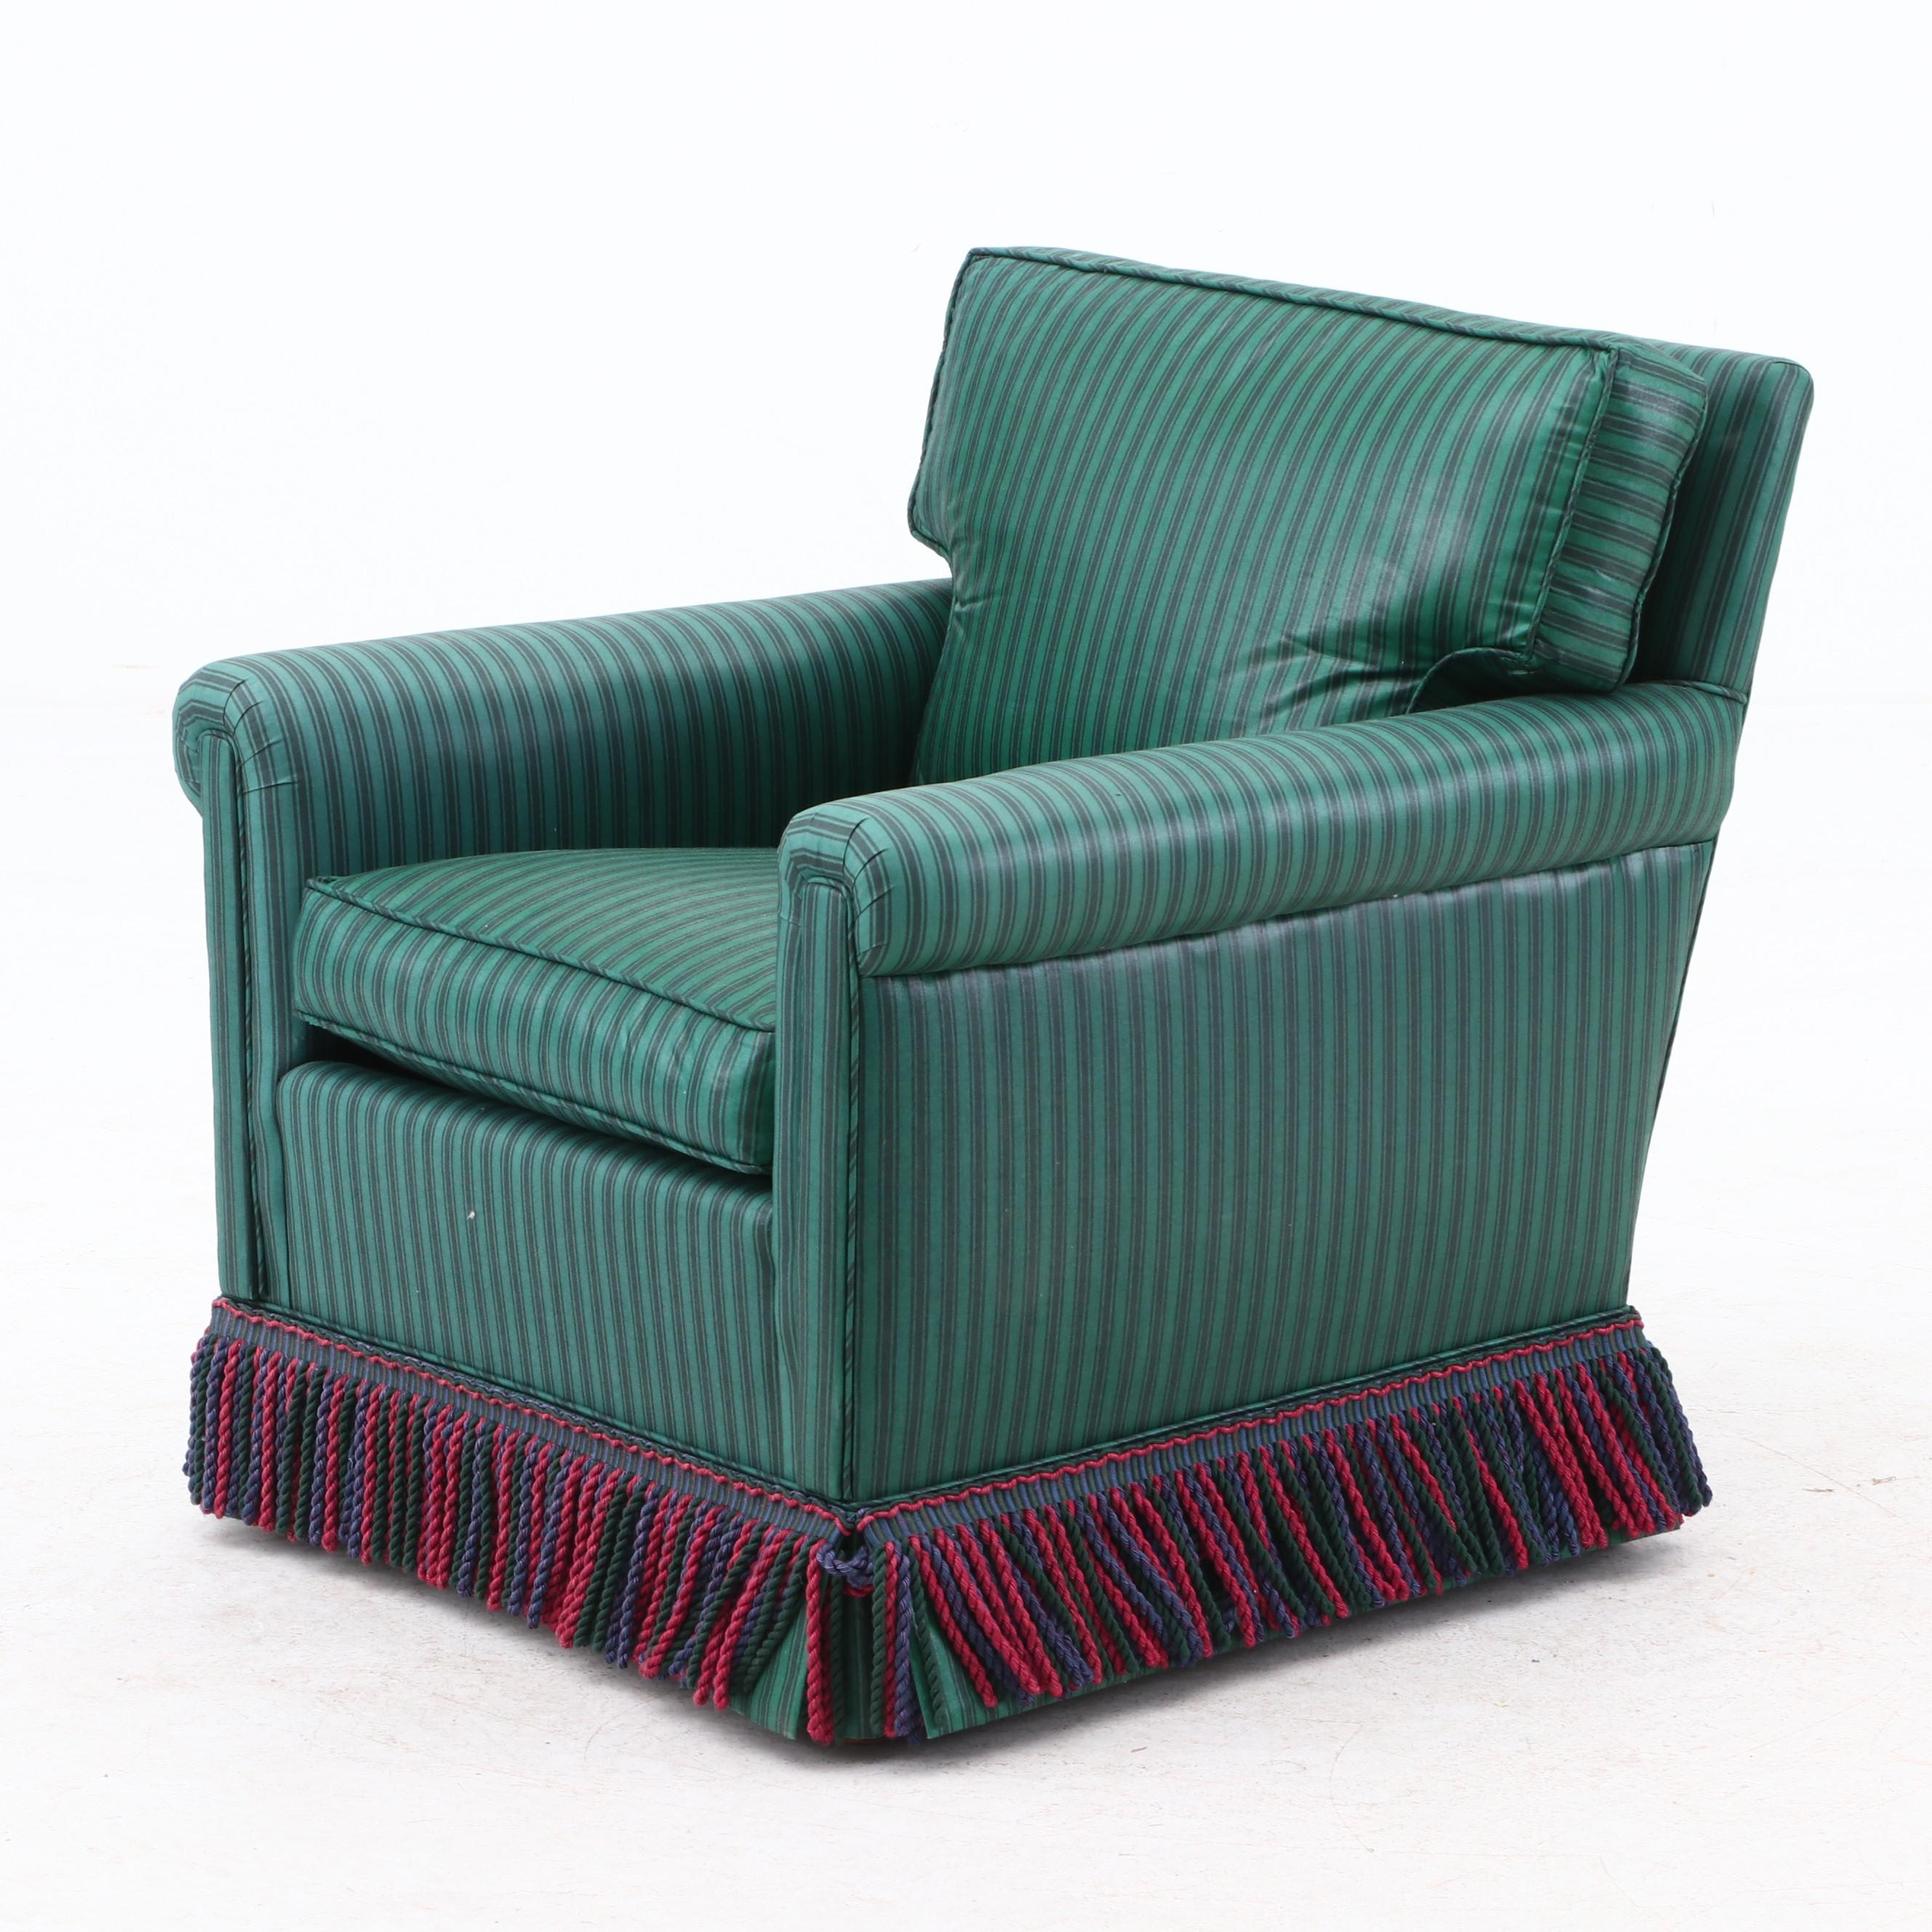 Upholstered Armchair in Green